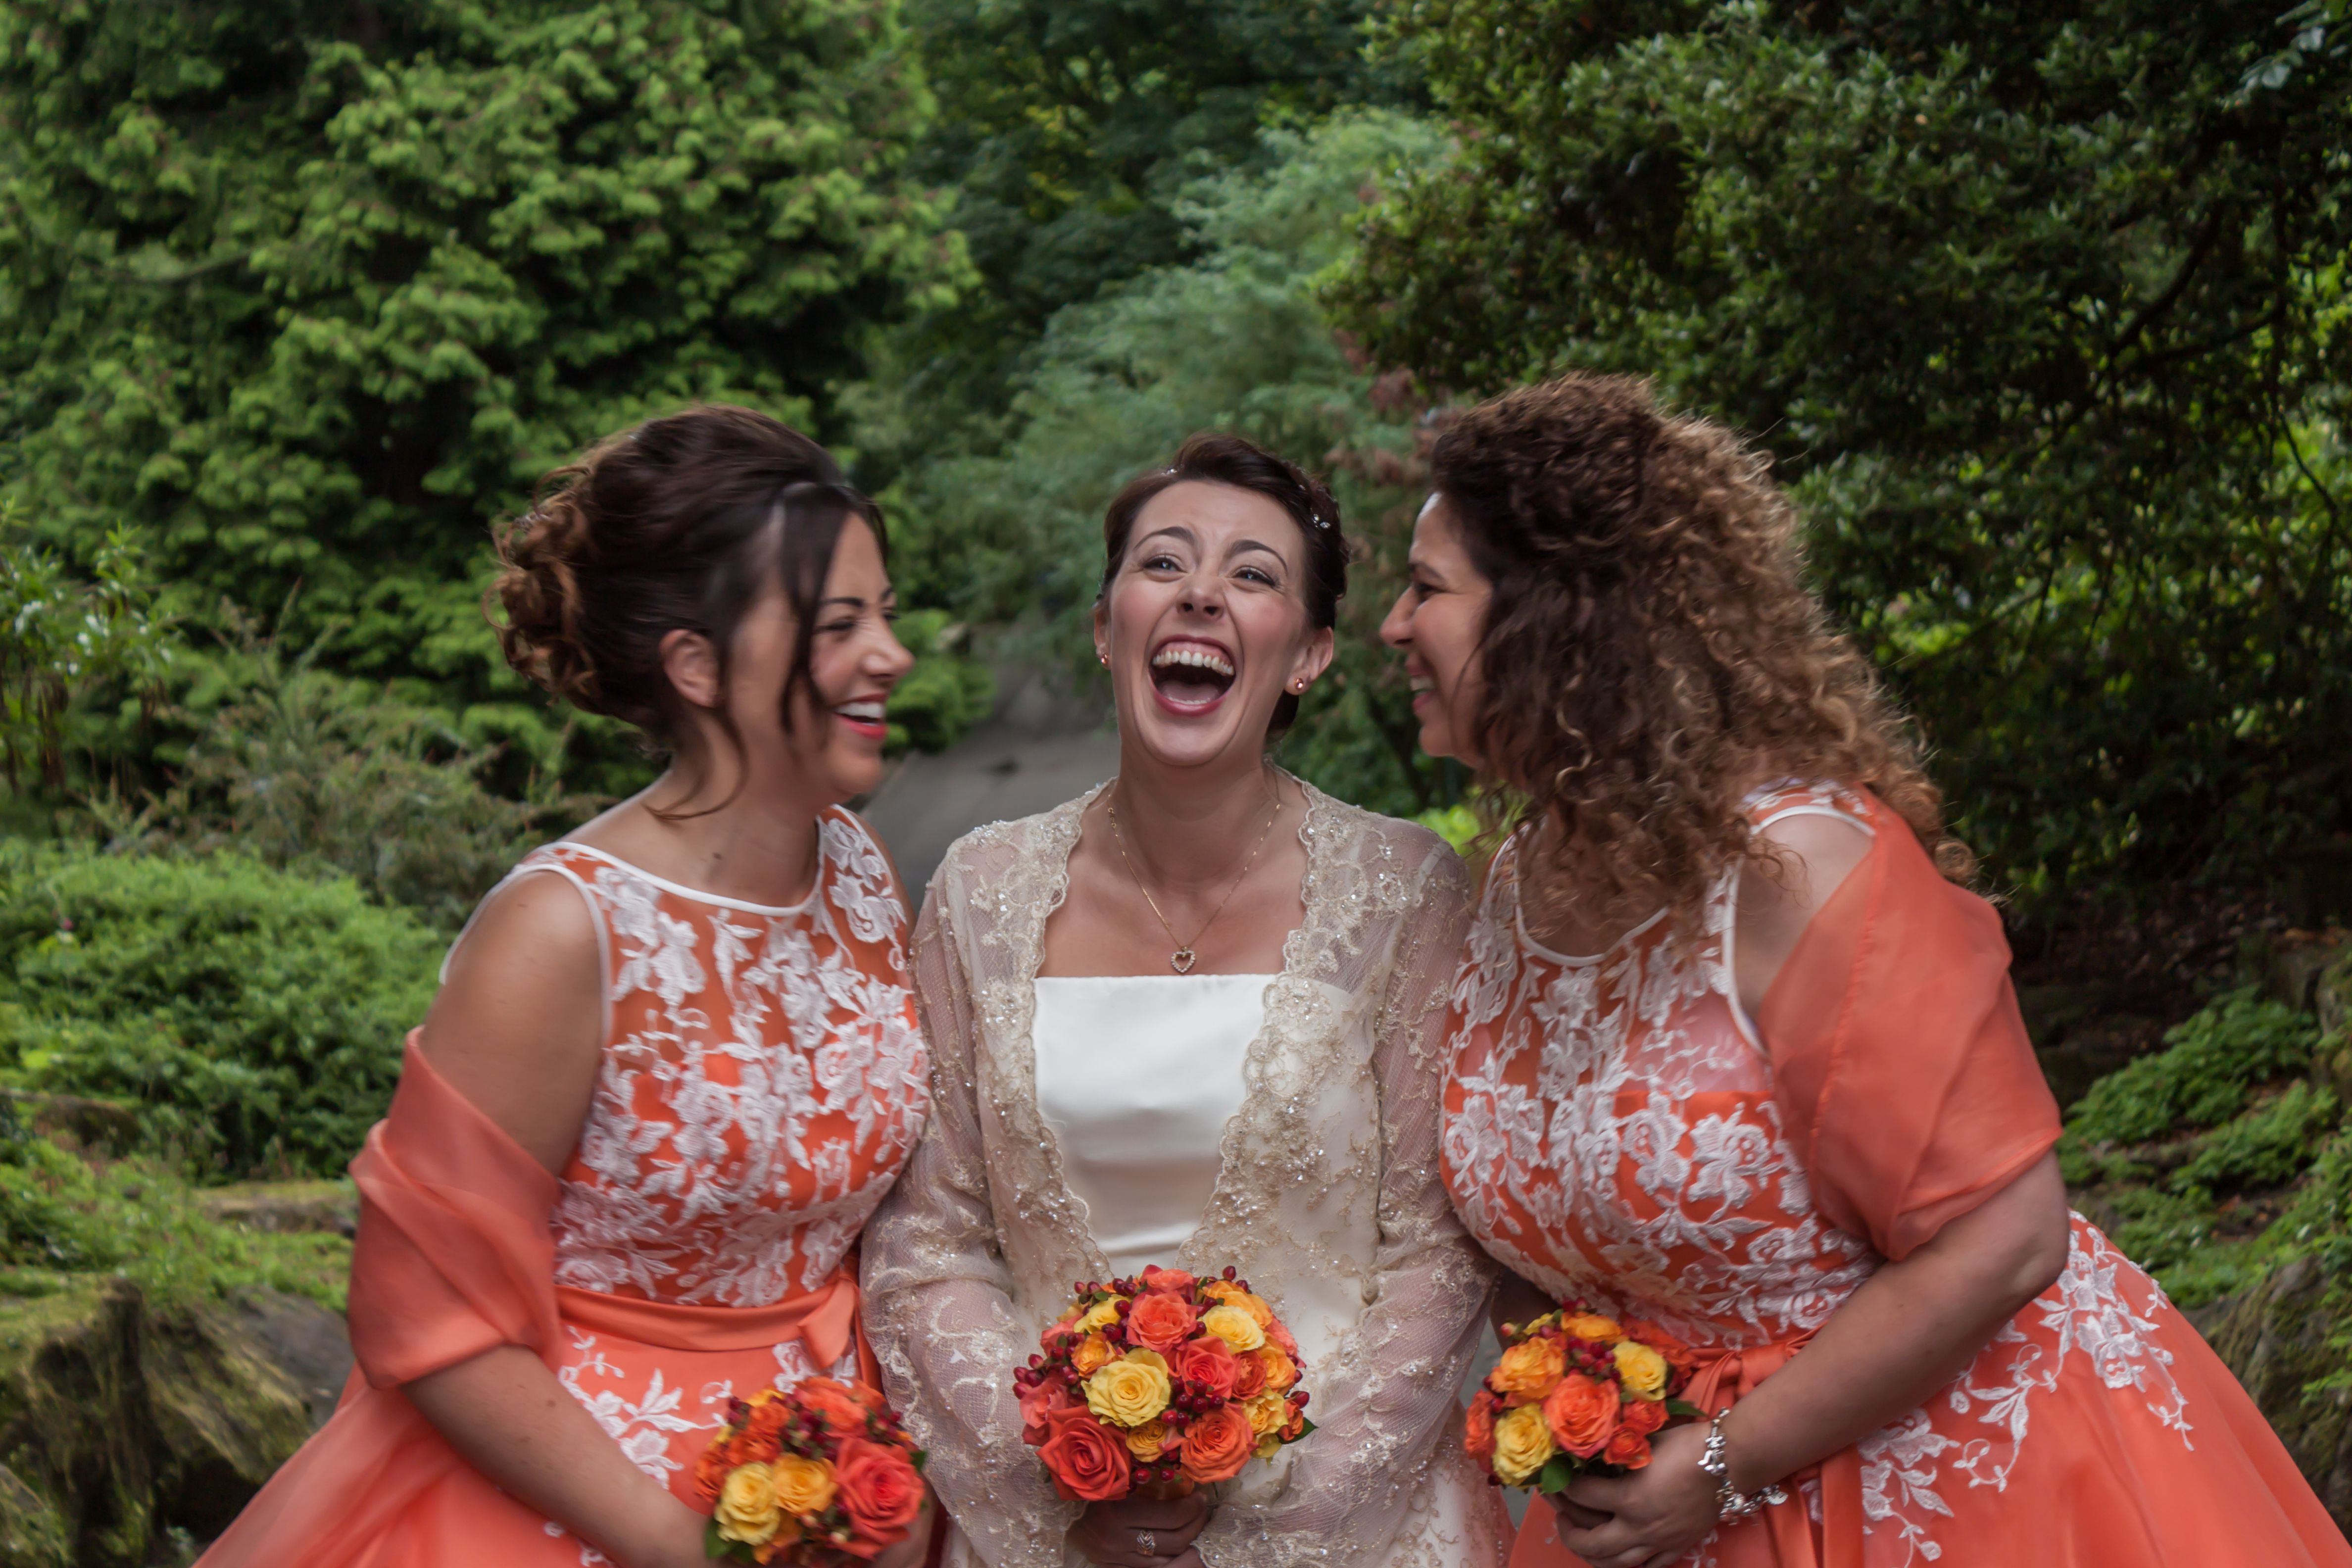 laughter with the bridesmaids